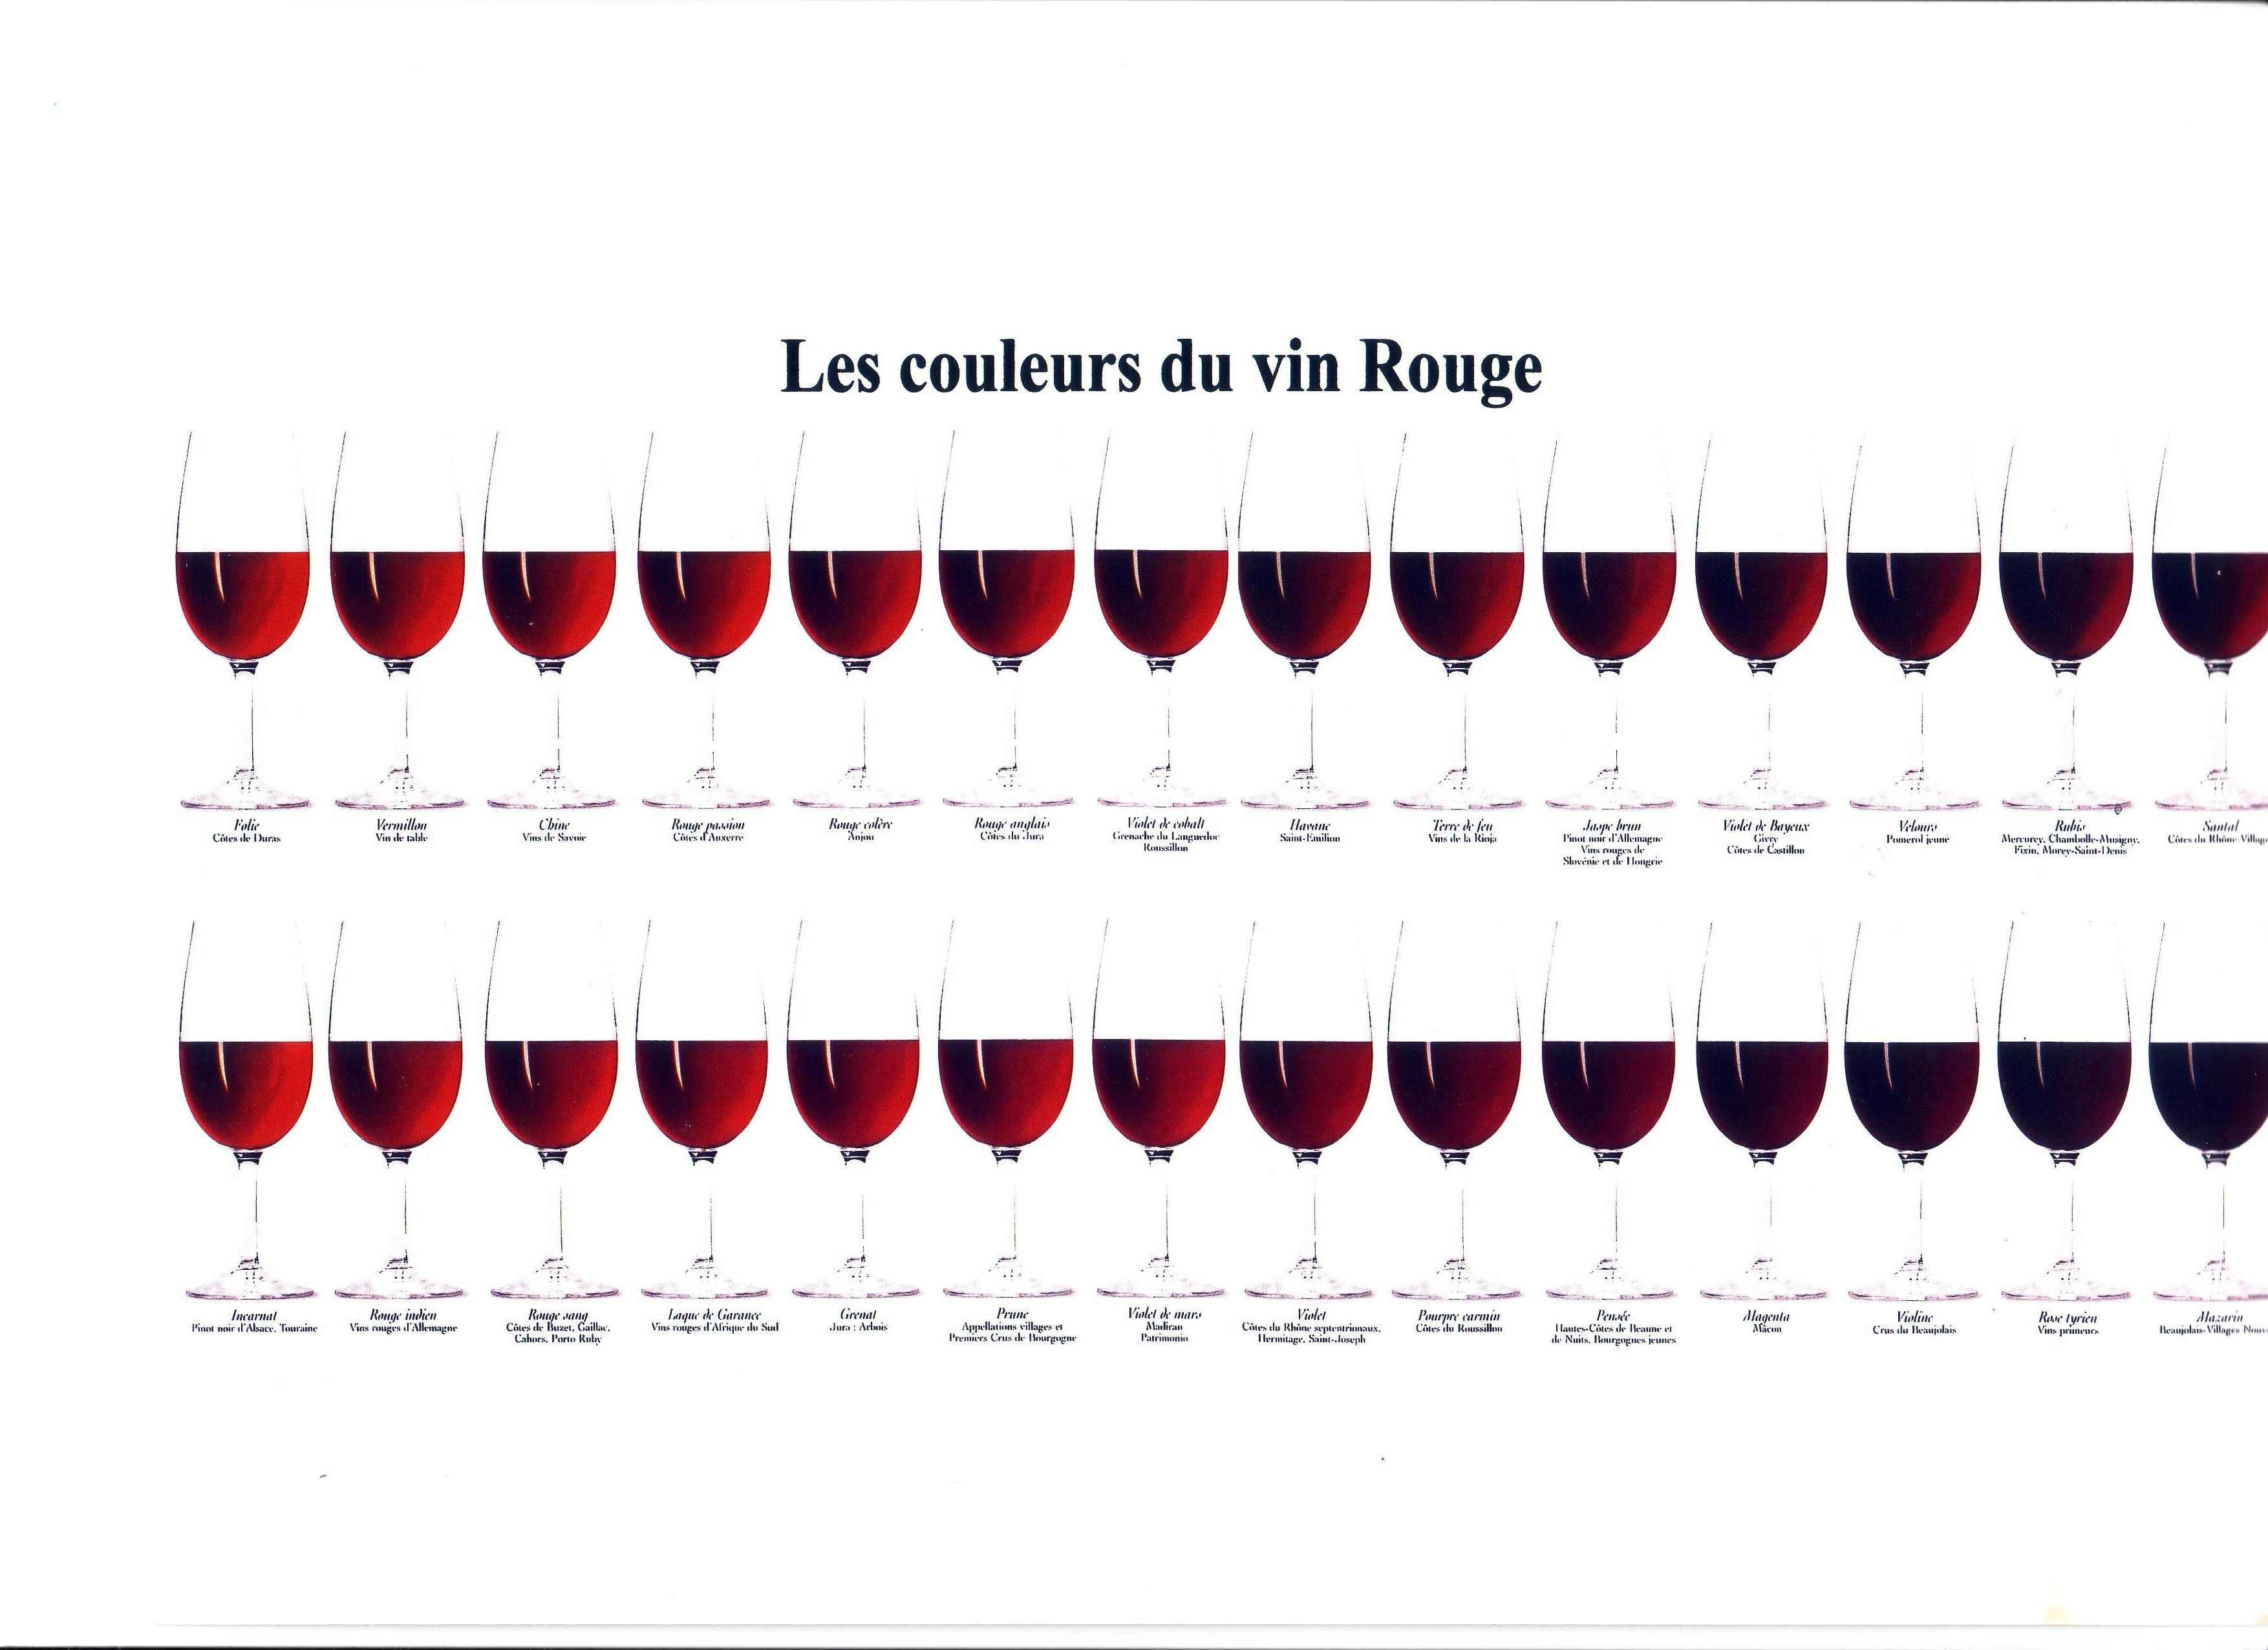 les couleurs du vin rouge infographics pinterest wine red wines and wine facts. Black Bedroom Furniture Sets. Home Design Ideas